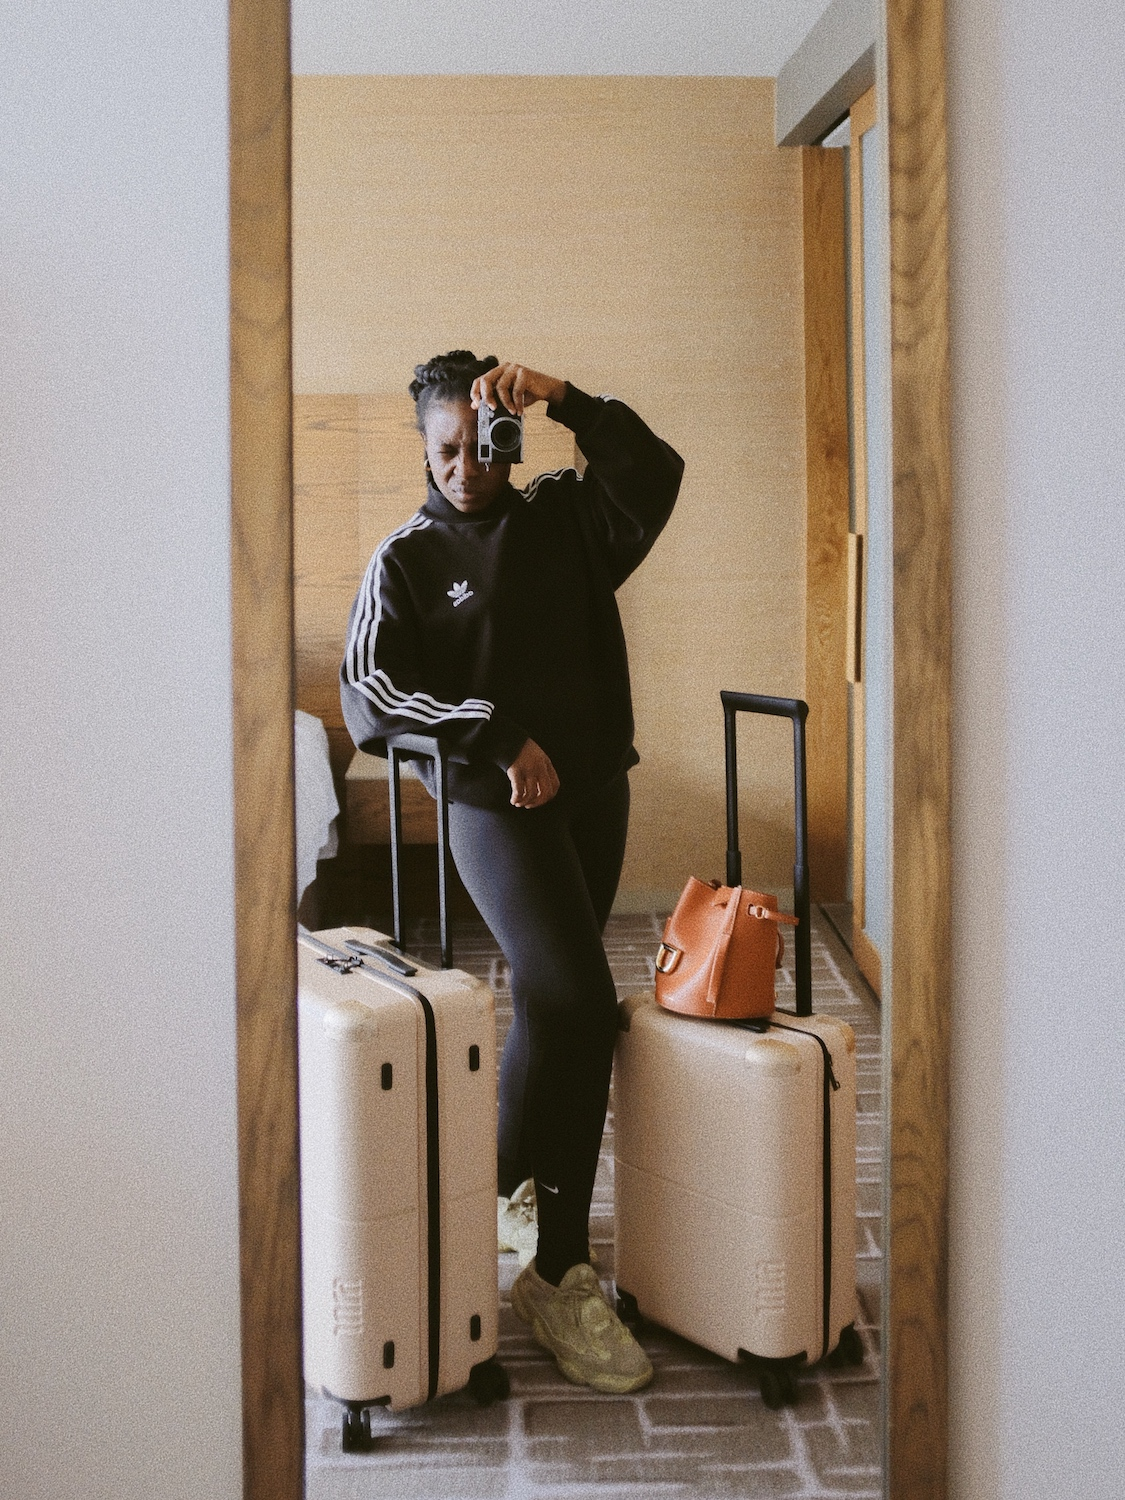 From Traveler to expat: the struggles to move to a new country